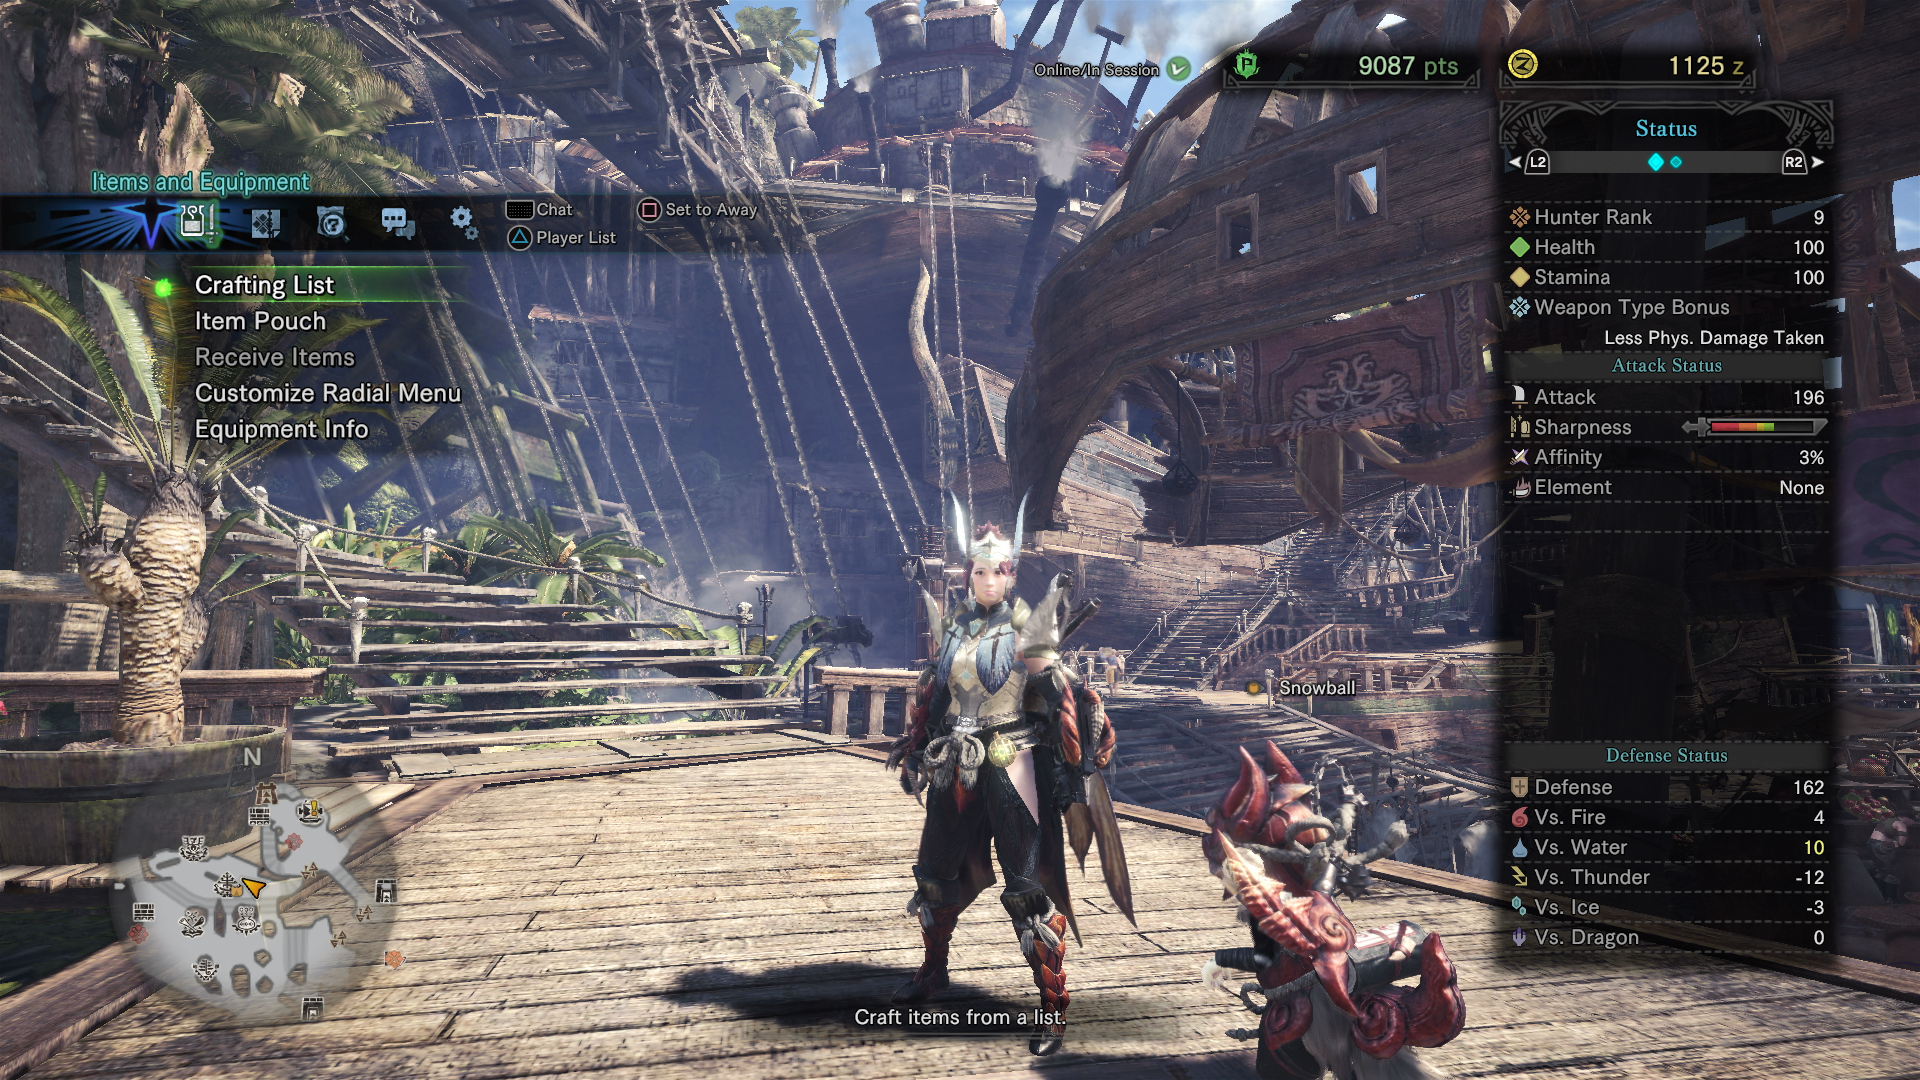 Monster hunter world crafting guide how to craft items for Decoration list monster hunter world